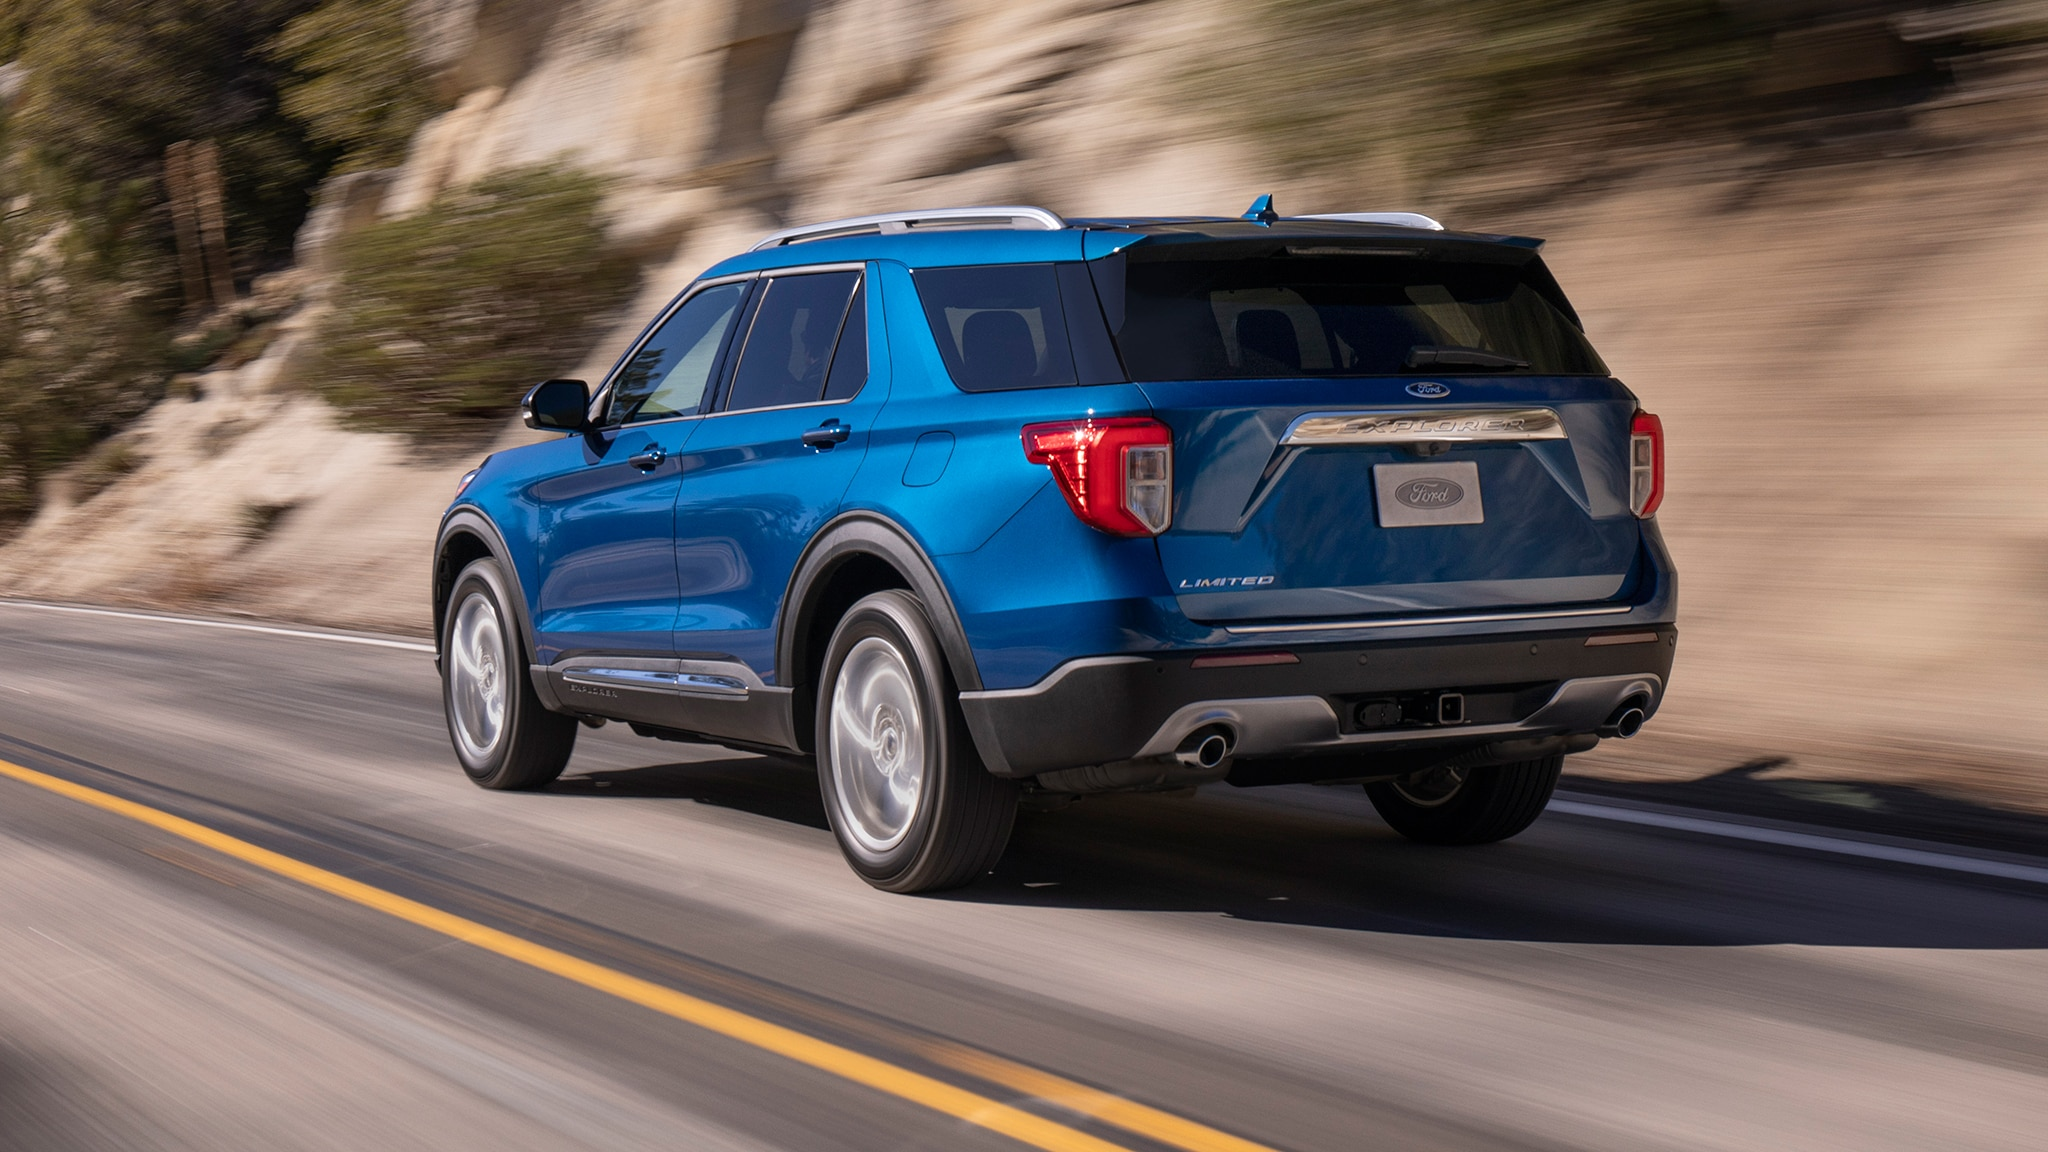 2020 Ford Explorer Photos And Details What You Need To Know